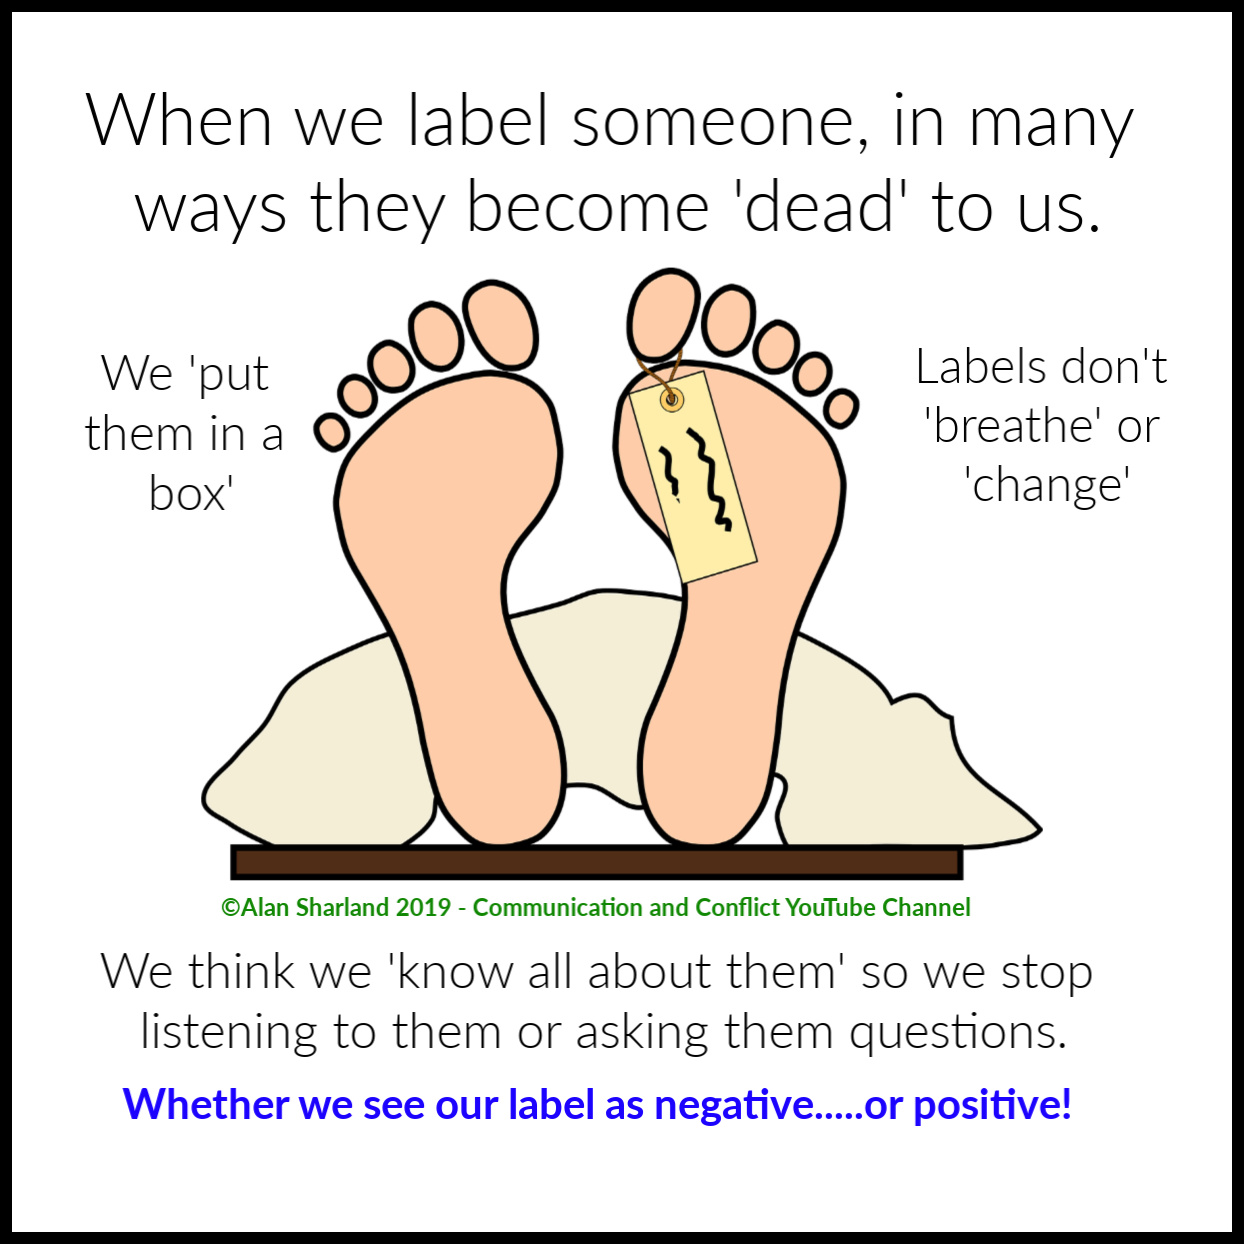 When we label someone, in many ways they become dead to us